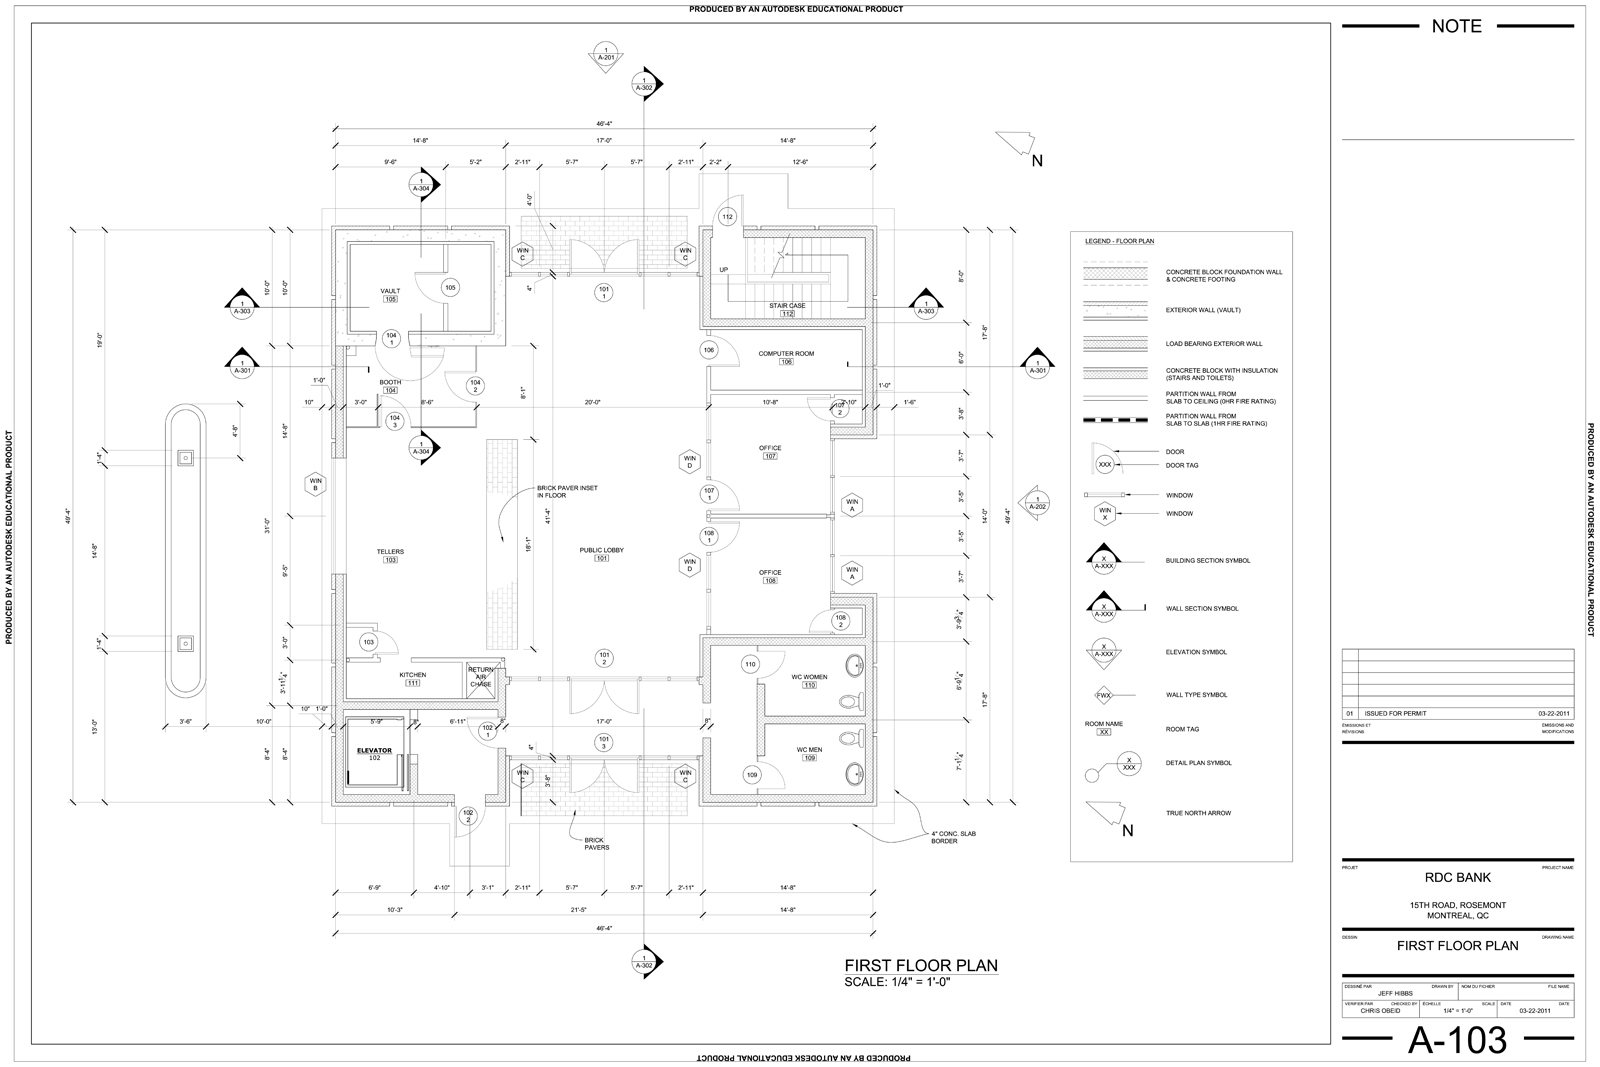 Foundation Plan Drawings